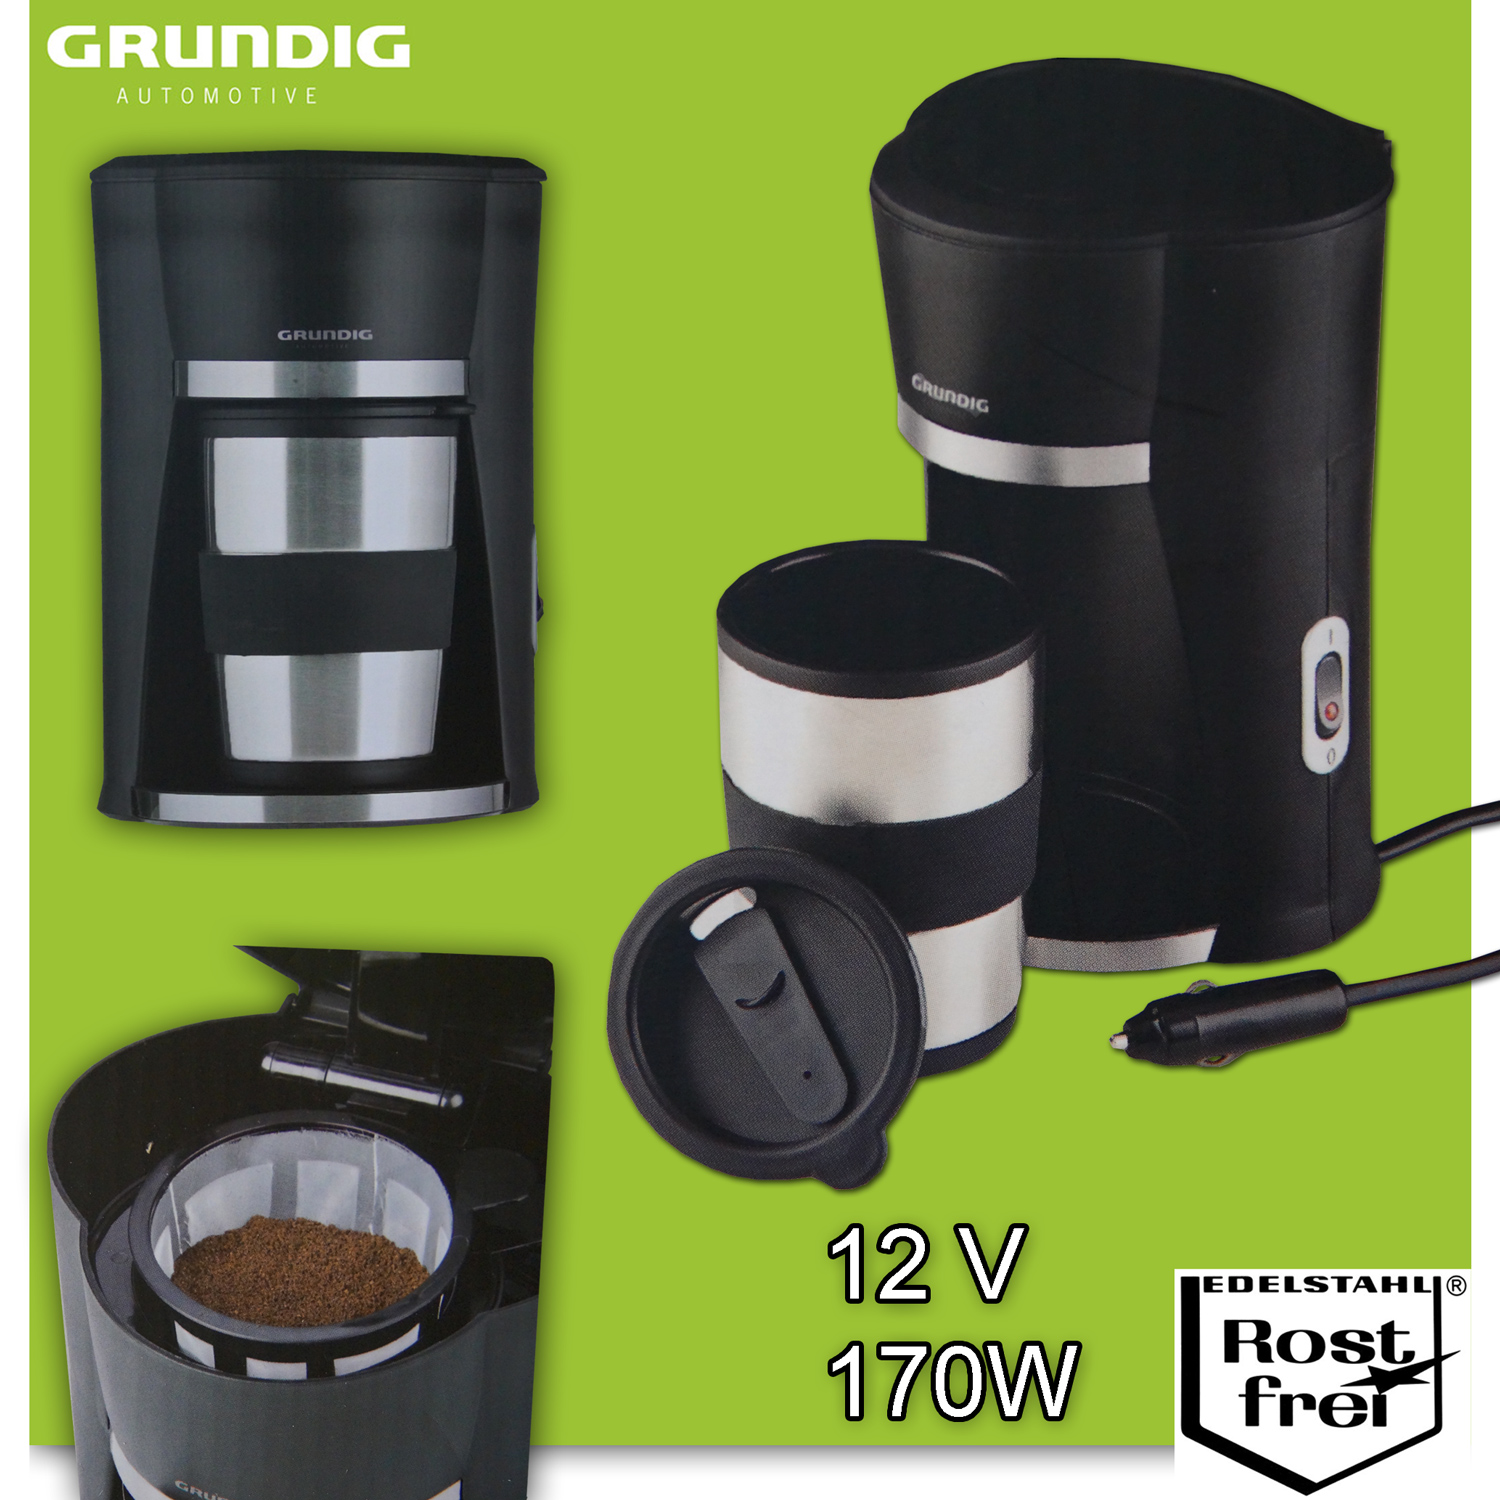 12v grundig auto kaffeemaschine inkl becher boot 12 volt. Black Bedroom Furniture Sets. Home Design Ideas